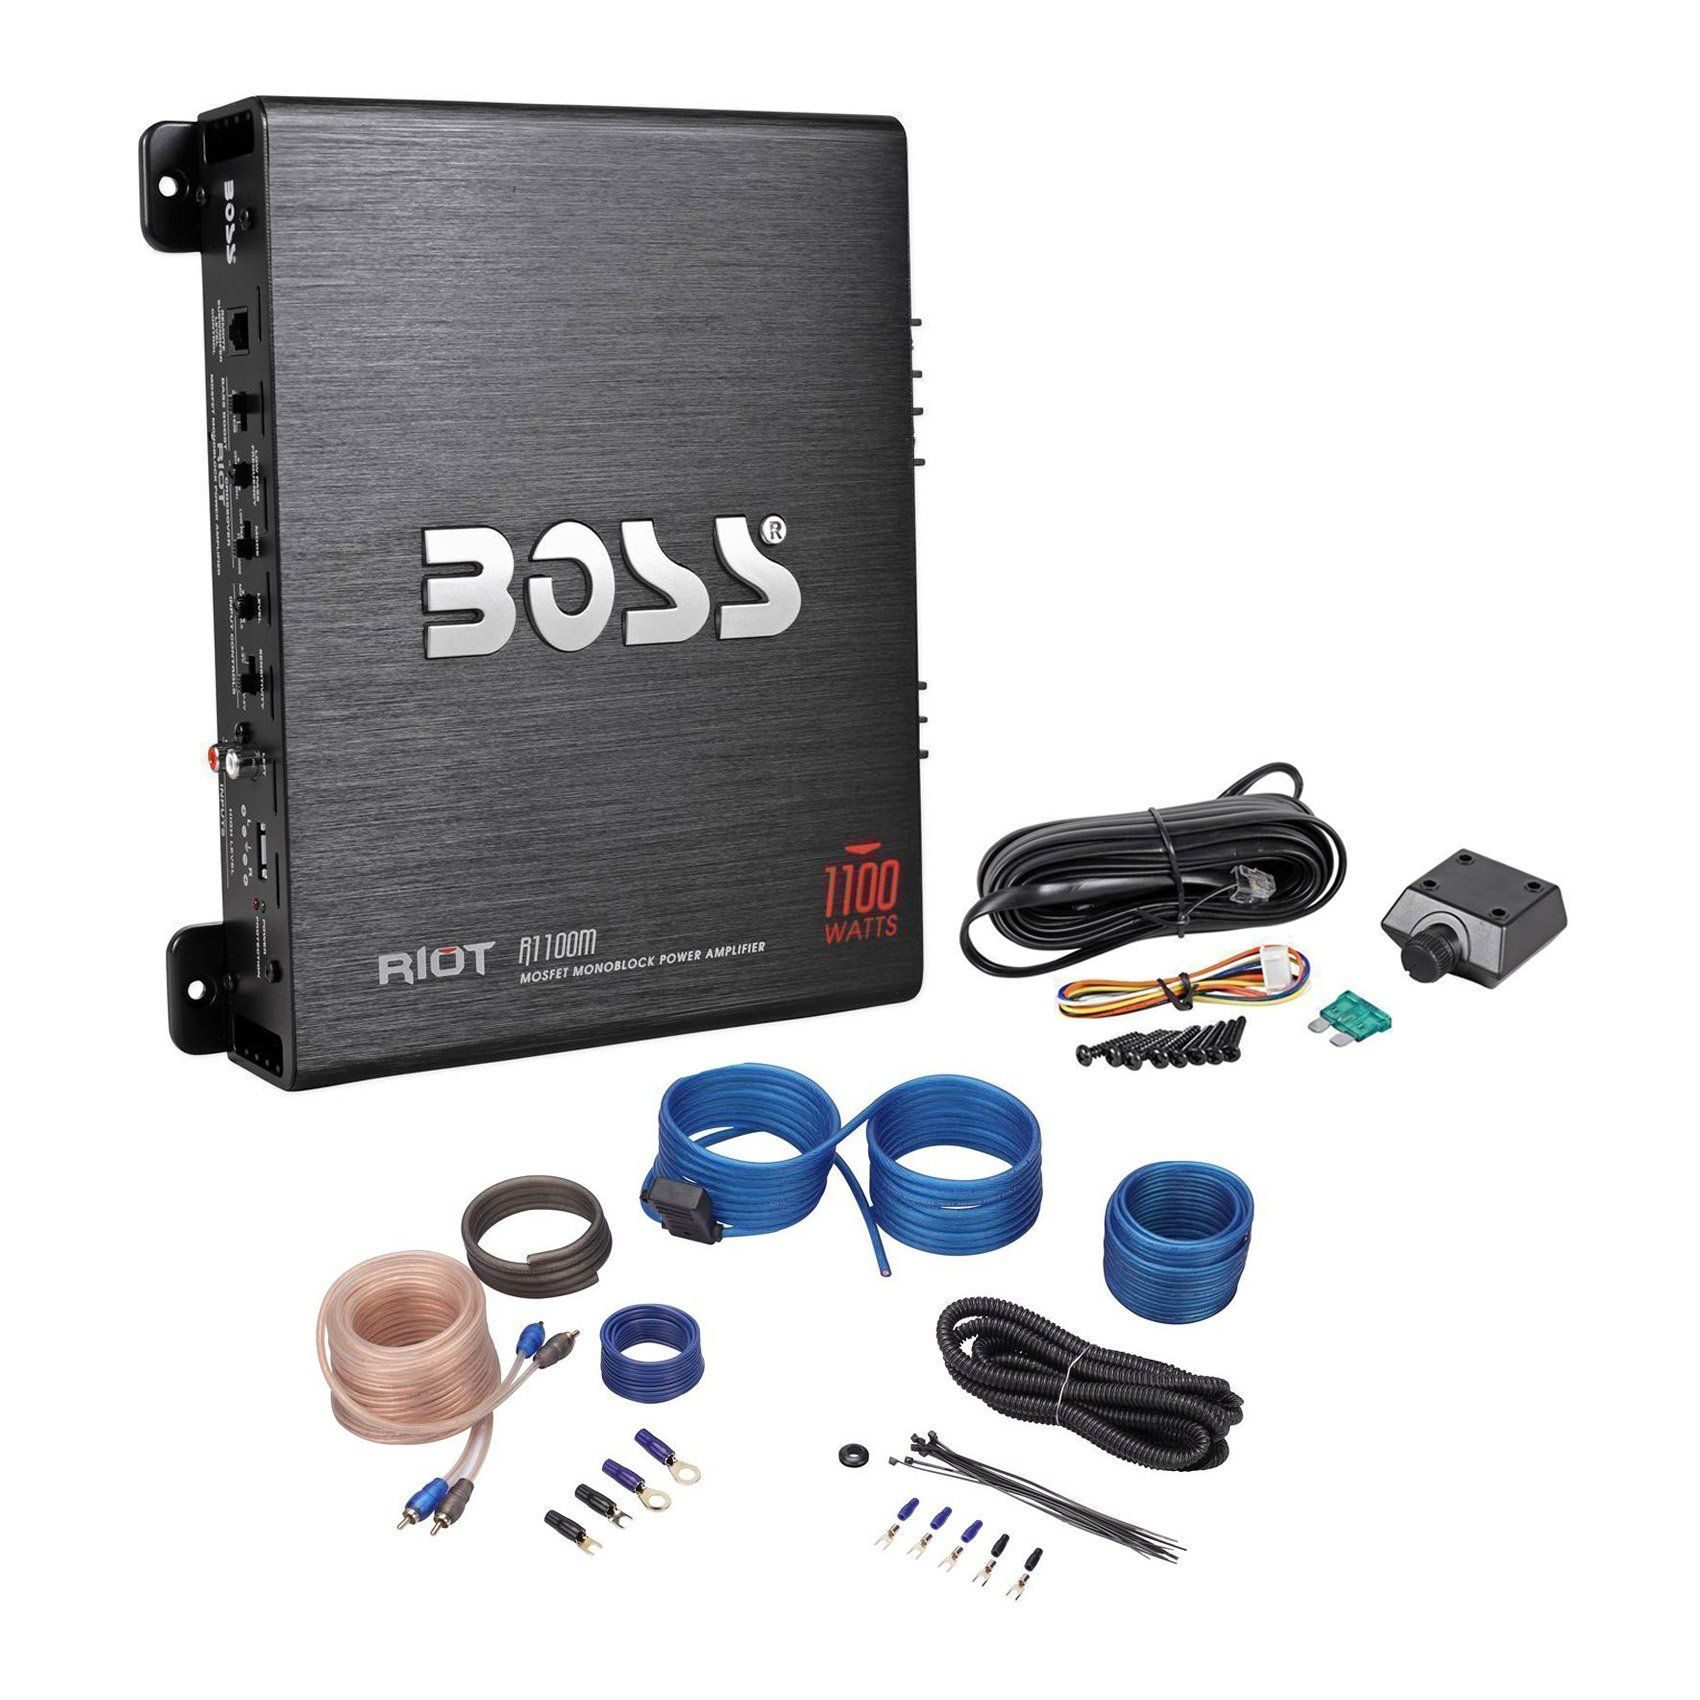 Package Boss Riot Series R1100m Monoblock 1100 Watt Class A B Car Power Acoustik 8ga Amp Wiring Kit Audio Amplifier With Sub Bass Remote Rockville Rwk10 10 Gauge 2 Channel Complete Wire